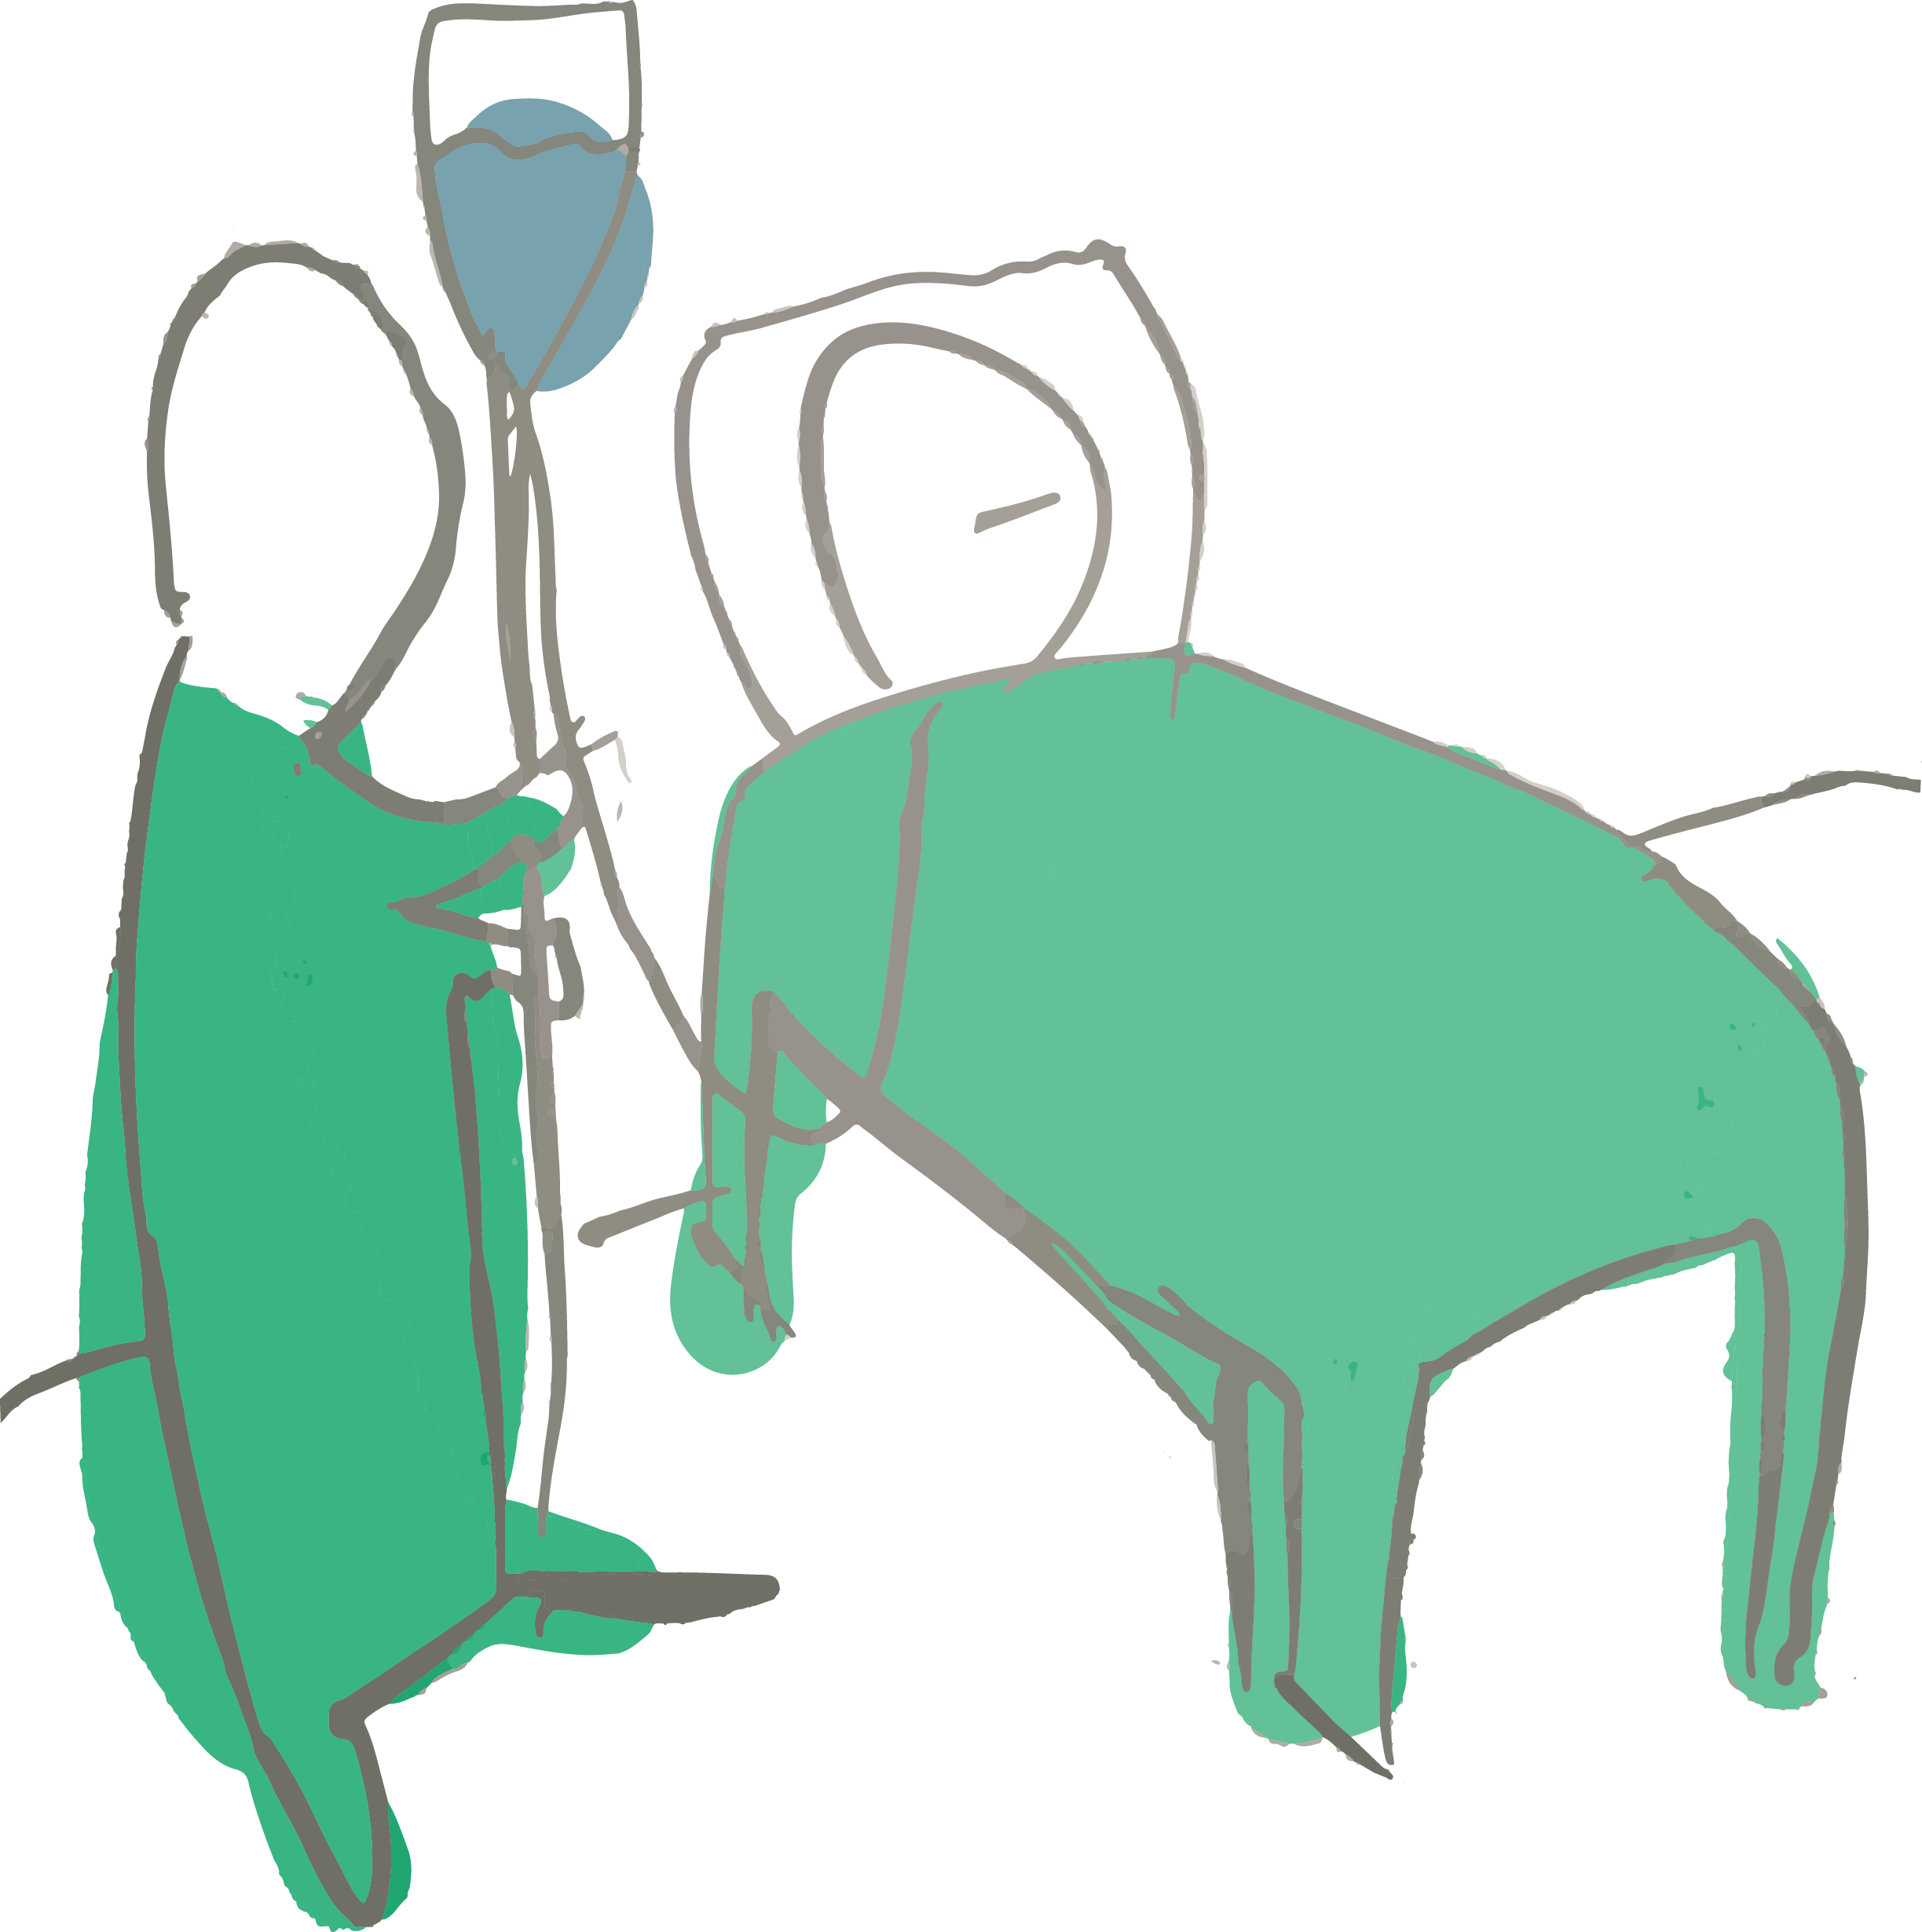 Digital illustration, white back ground, someone lying in a hospital bed with a nurse next to their bedside.